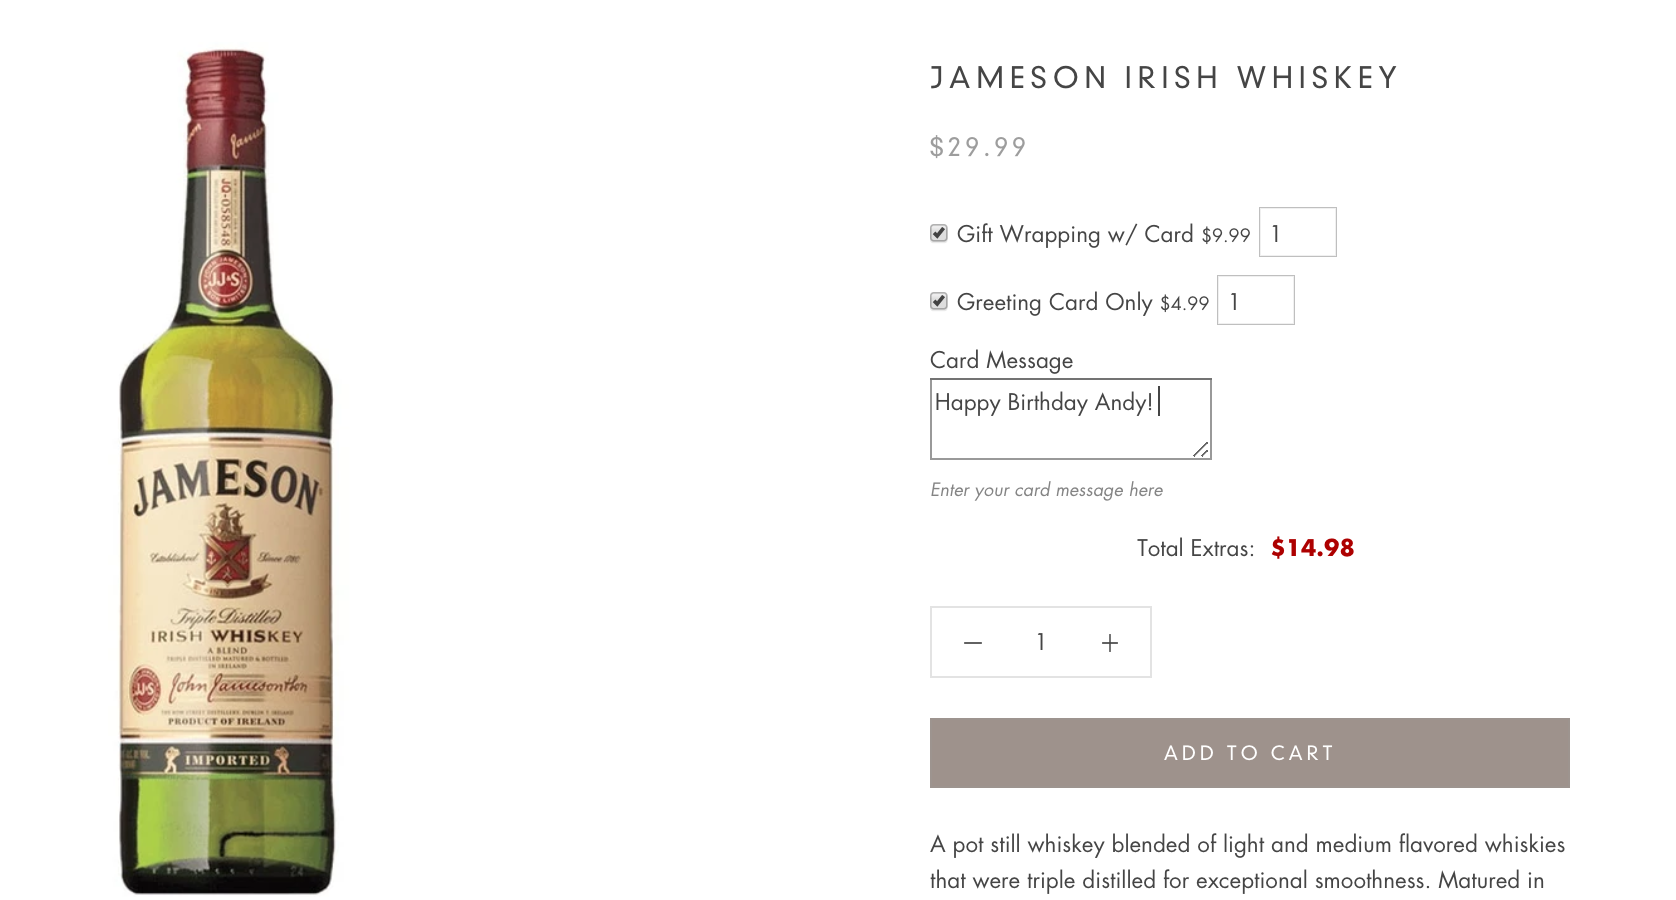 Image of bottle of Jameson's Irish Whiskey